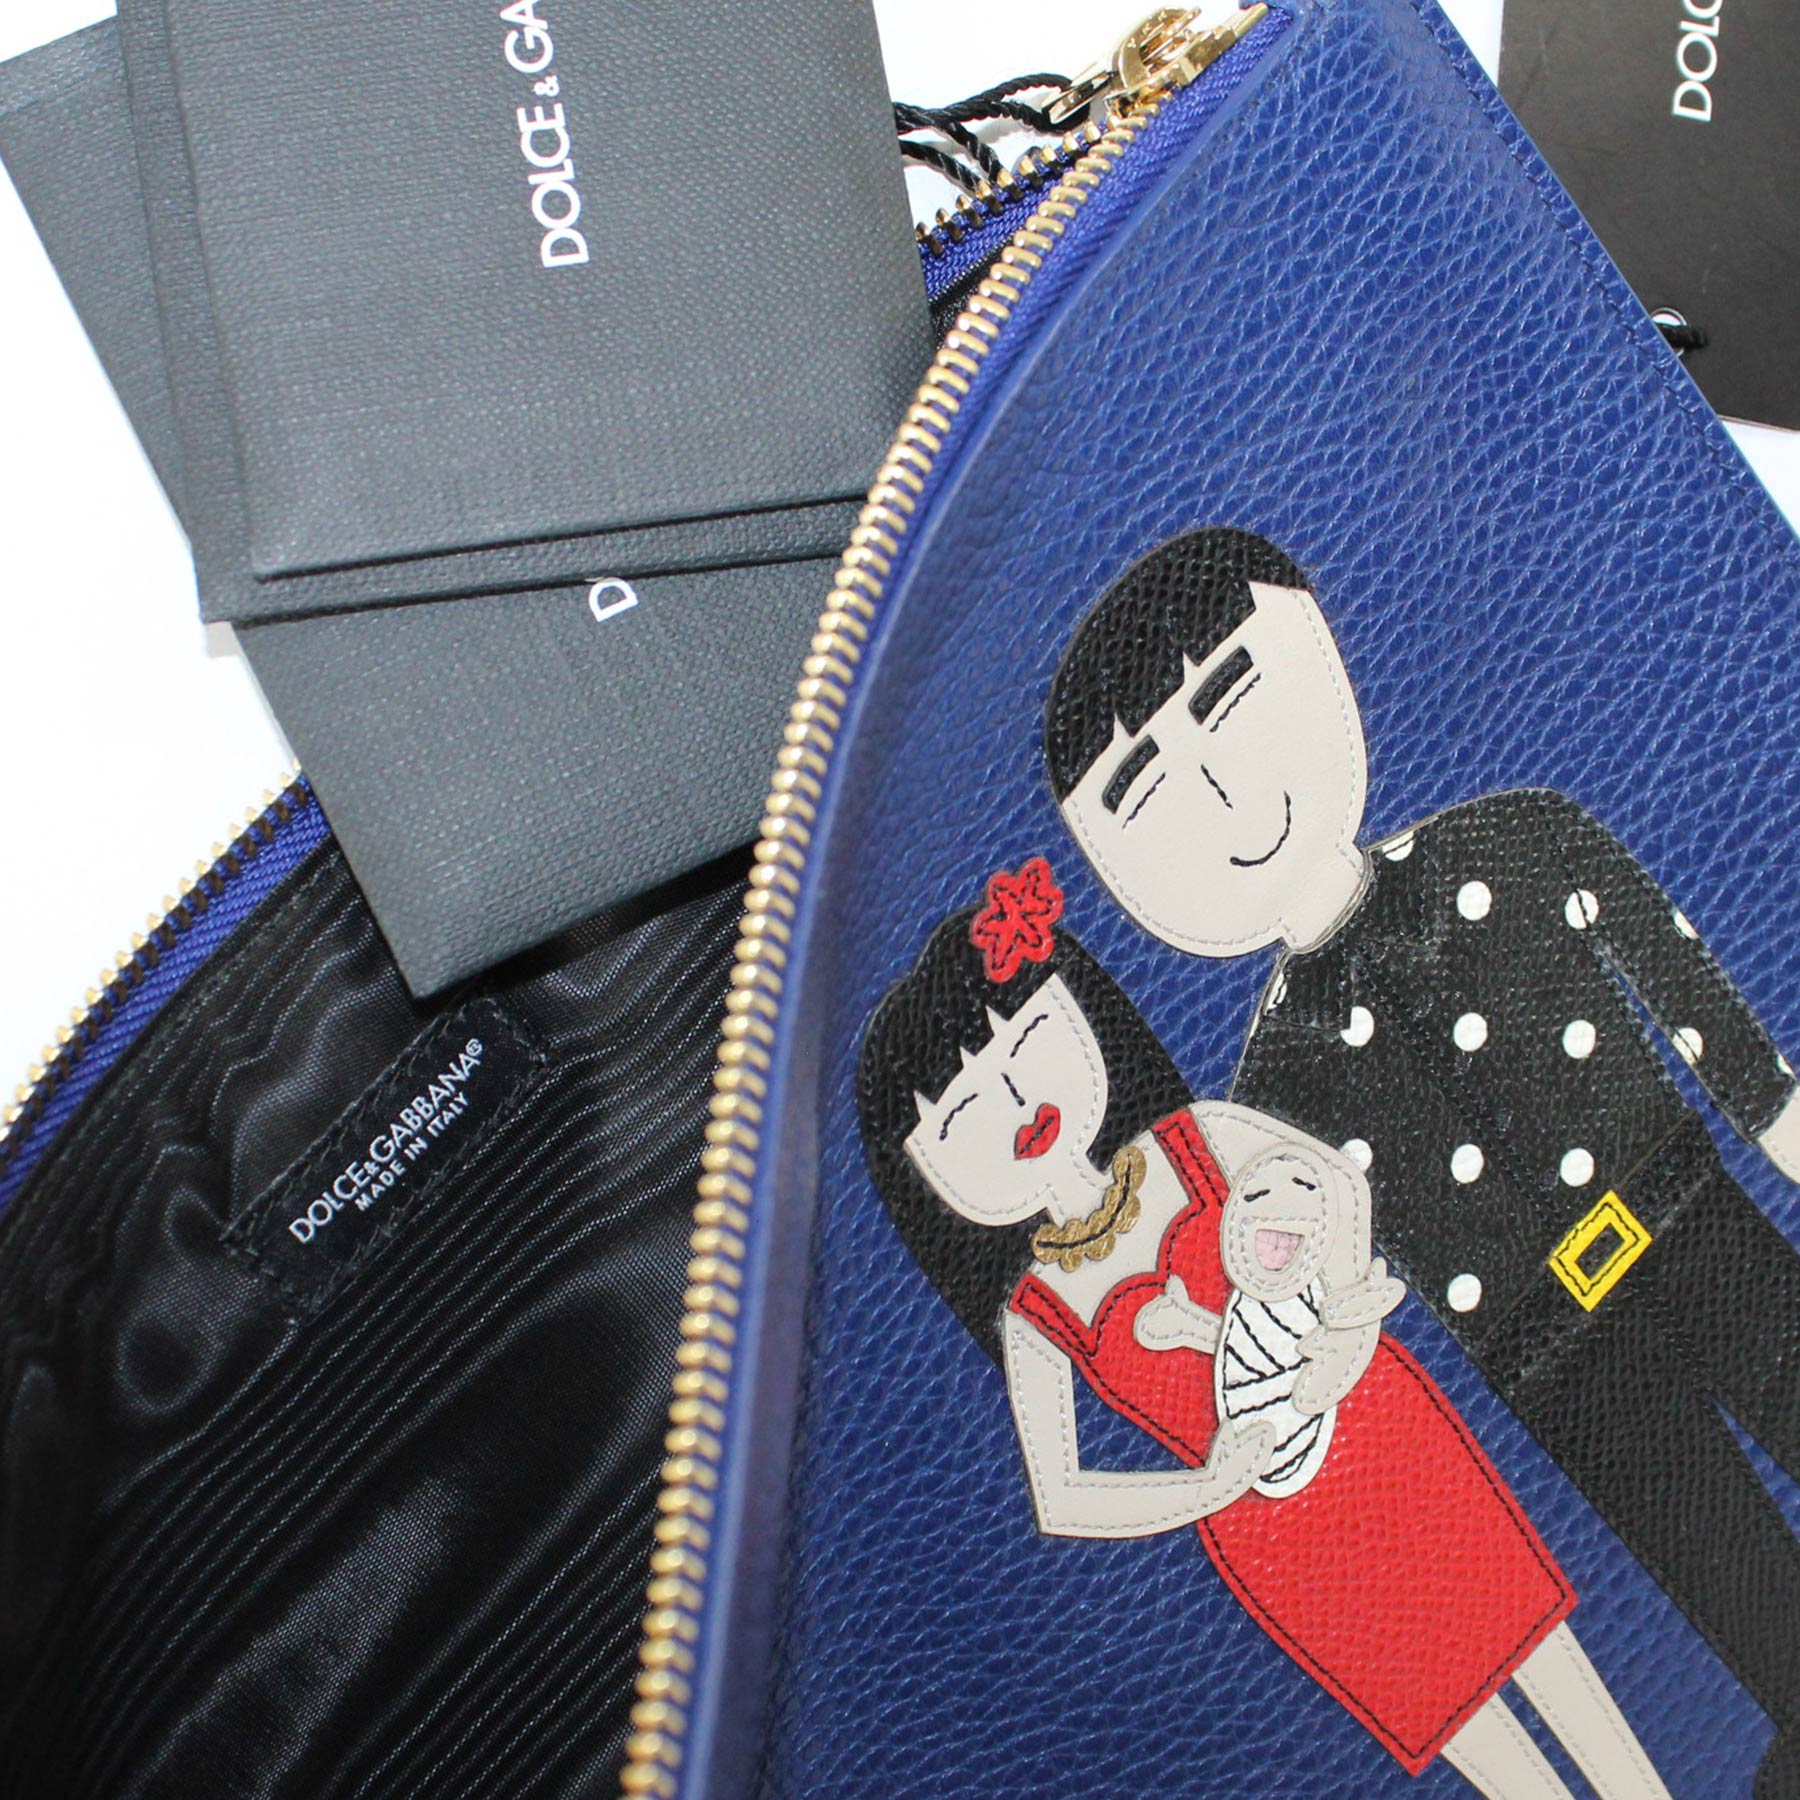 Dolce & Gabbana Lapis Blue Leather Zip Clutch Bag